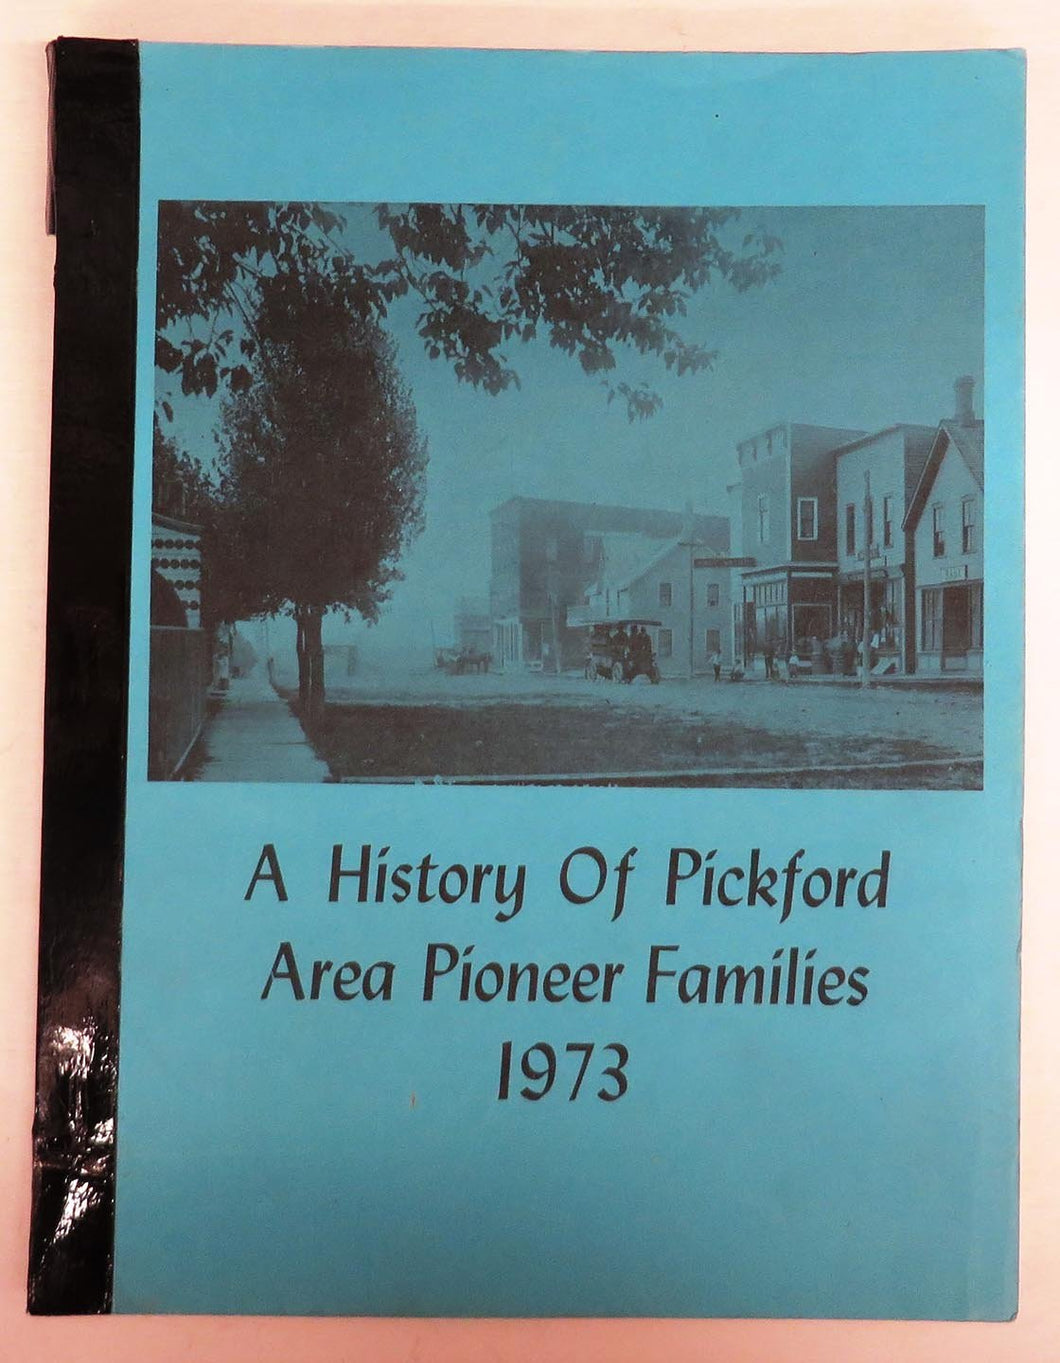 A History of Pickford Area Pioneer Families